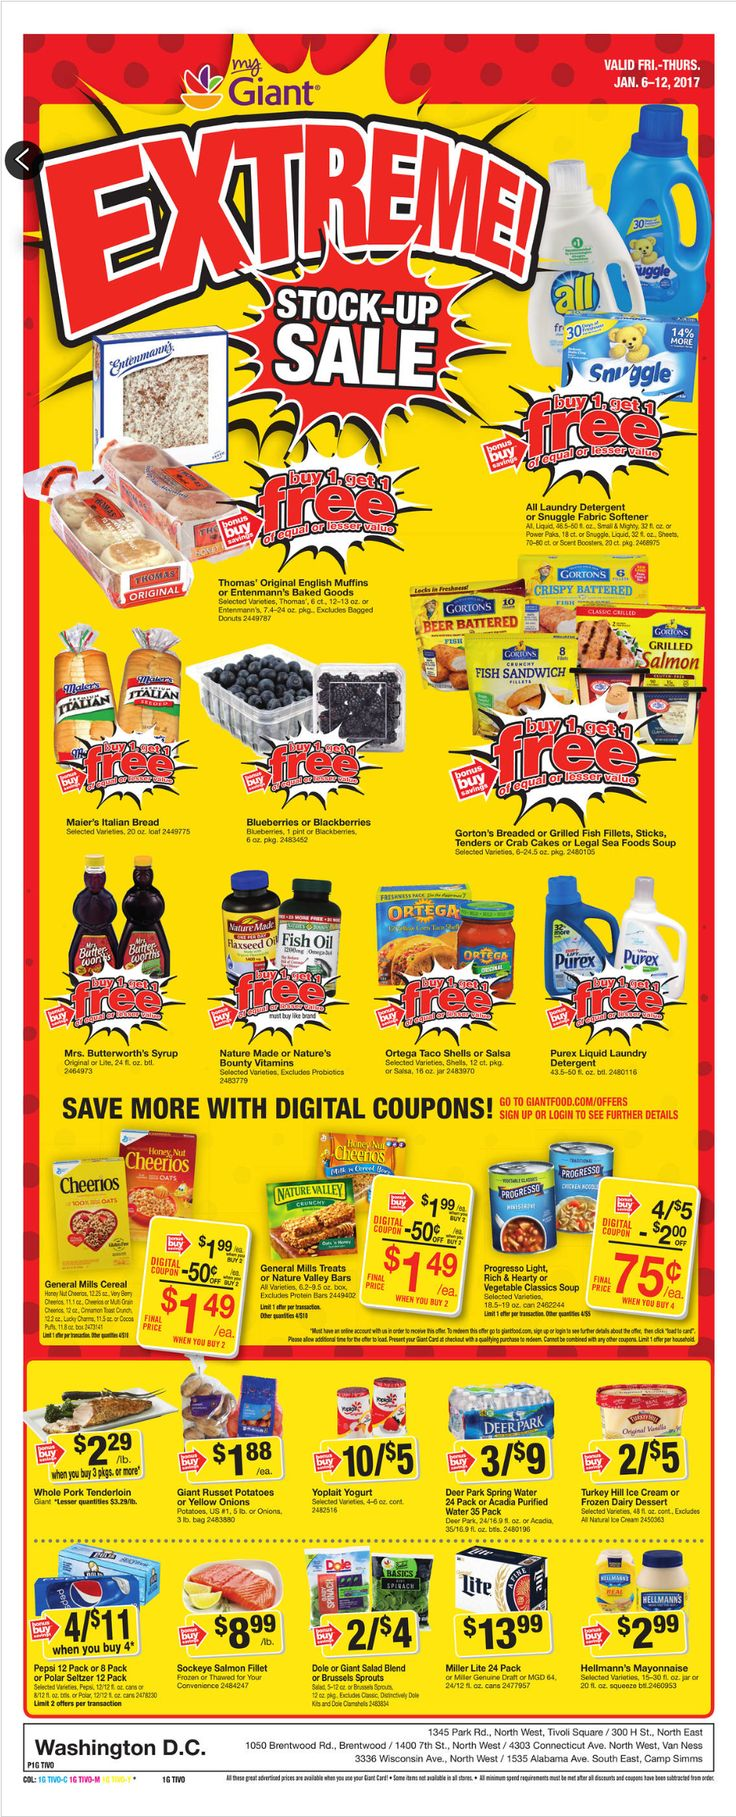 Giant Food Weekly Ad January 6 - 12, 2017 - http://www.olcatalog.com/grocery/giant-food-weekly-ad.html